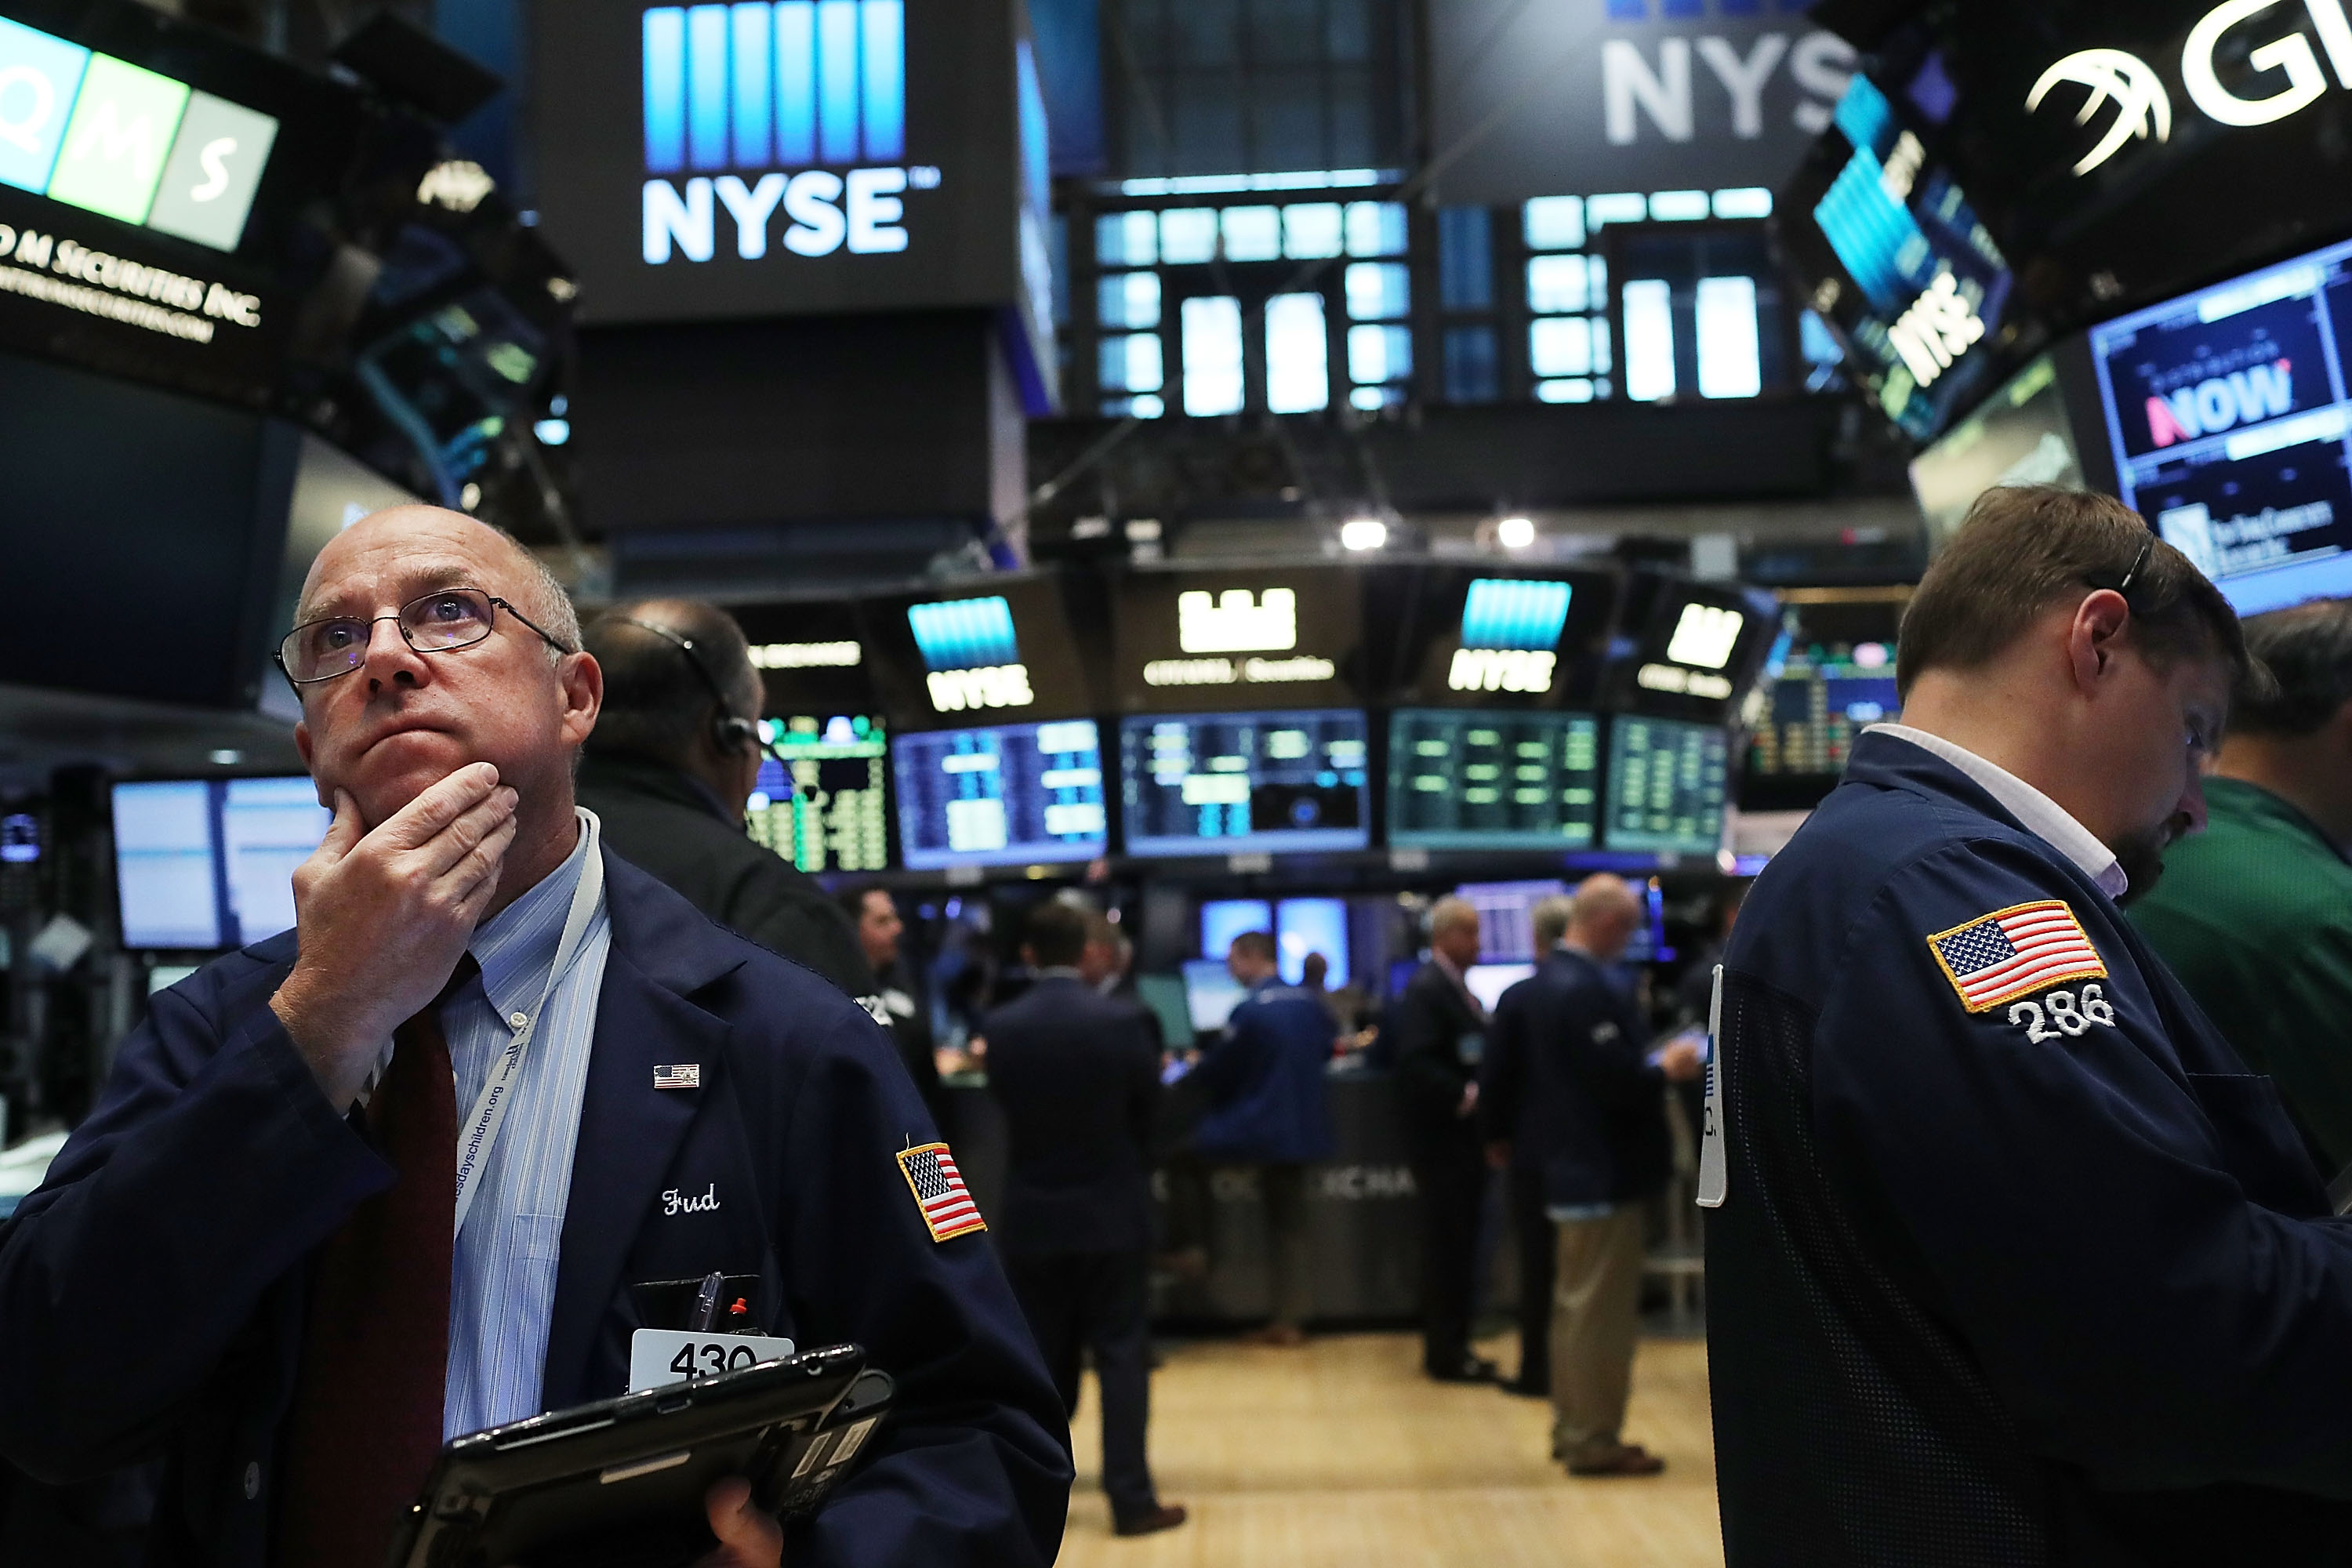 Dow Jones Industrial Average Slumps Again As Investors Absorb More Brexit Shock